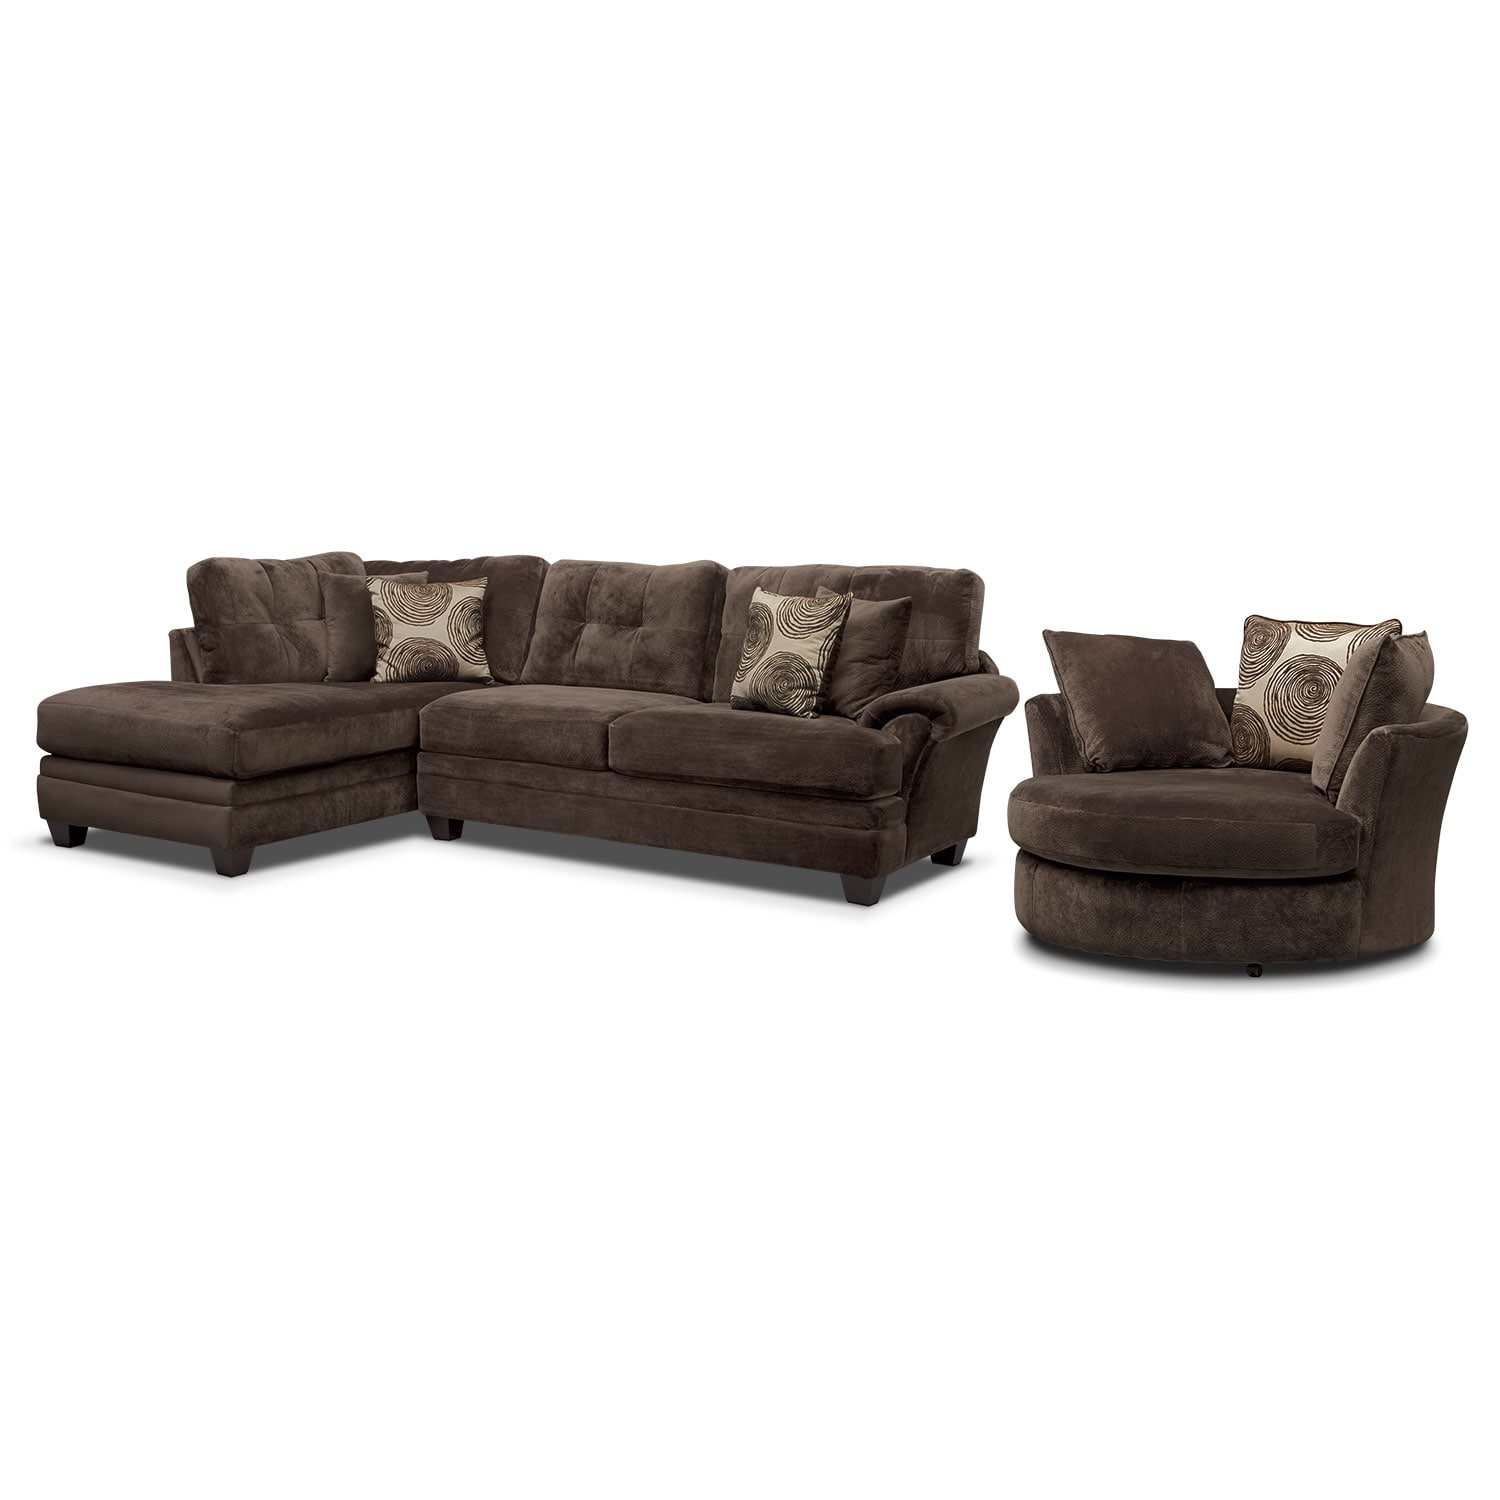 Ii 2 pc sectional and swivel chair american signature furniture - Cordelle 2 Piece Left Facing Chaise Sectional And Swivel Chair Set Chocolate